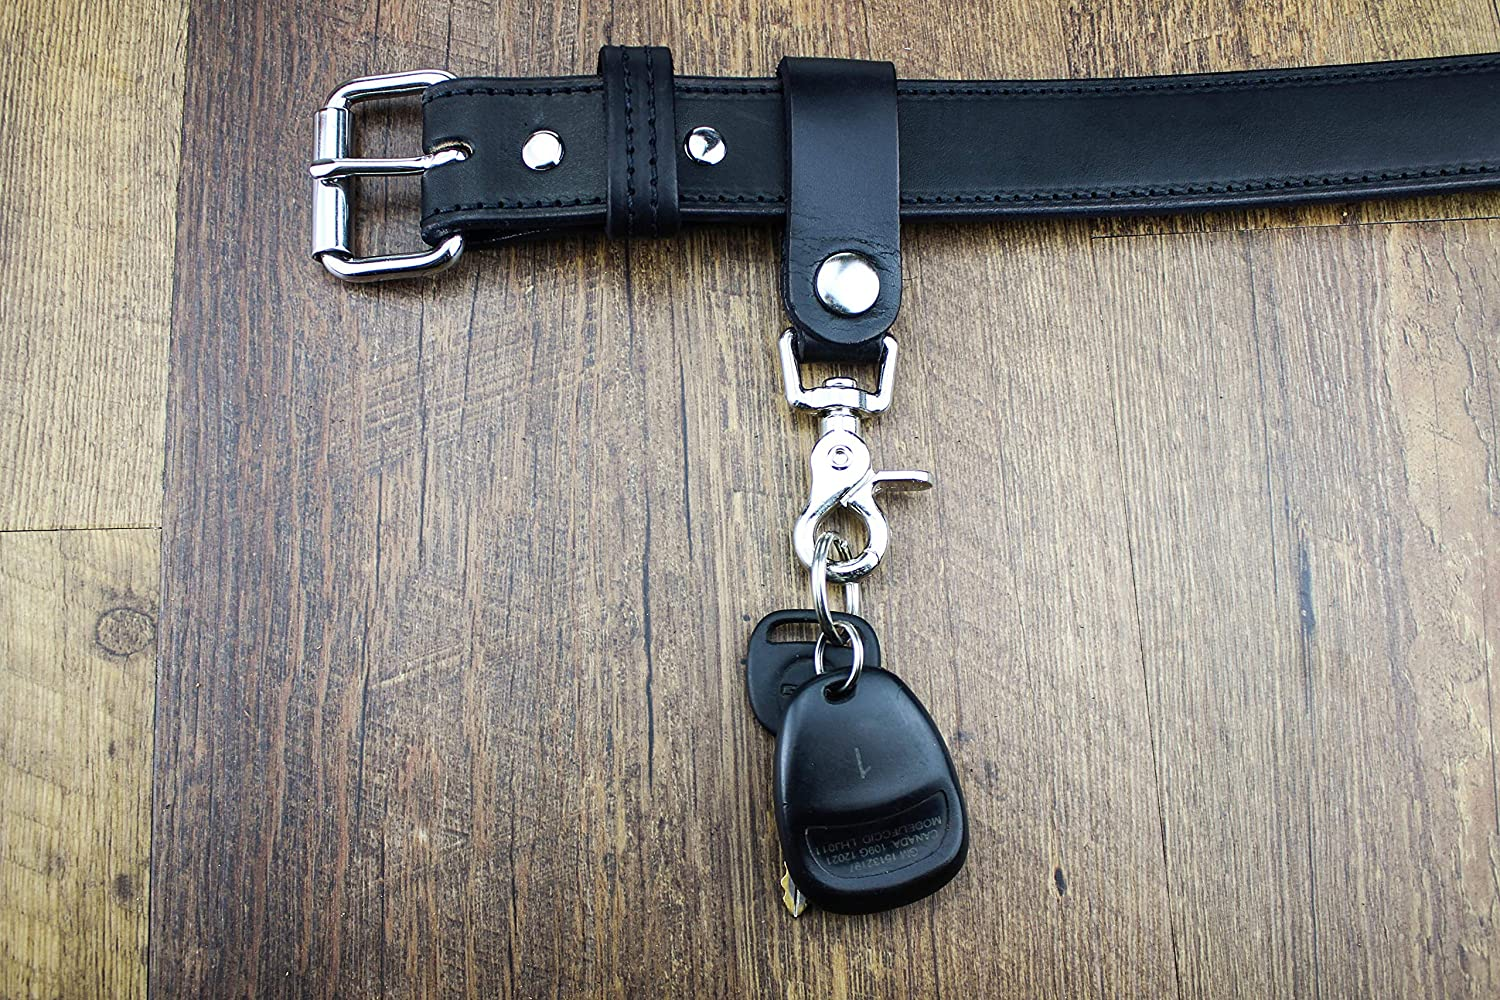 Luxury Valet Keychain Relentless Tactical The Ultimate Leather Keychain Leather Belt Keeper Key Ring Organizer Hand Made of Full Grain Leather Quick Detach Made in USA